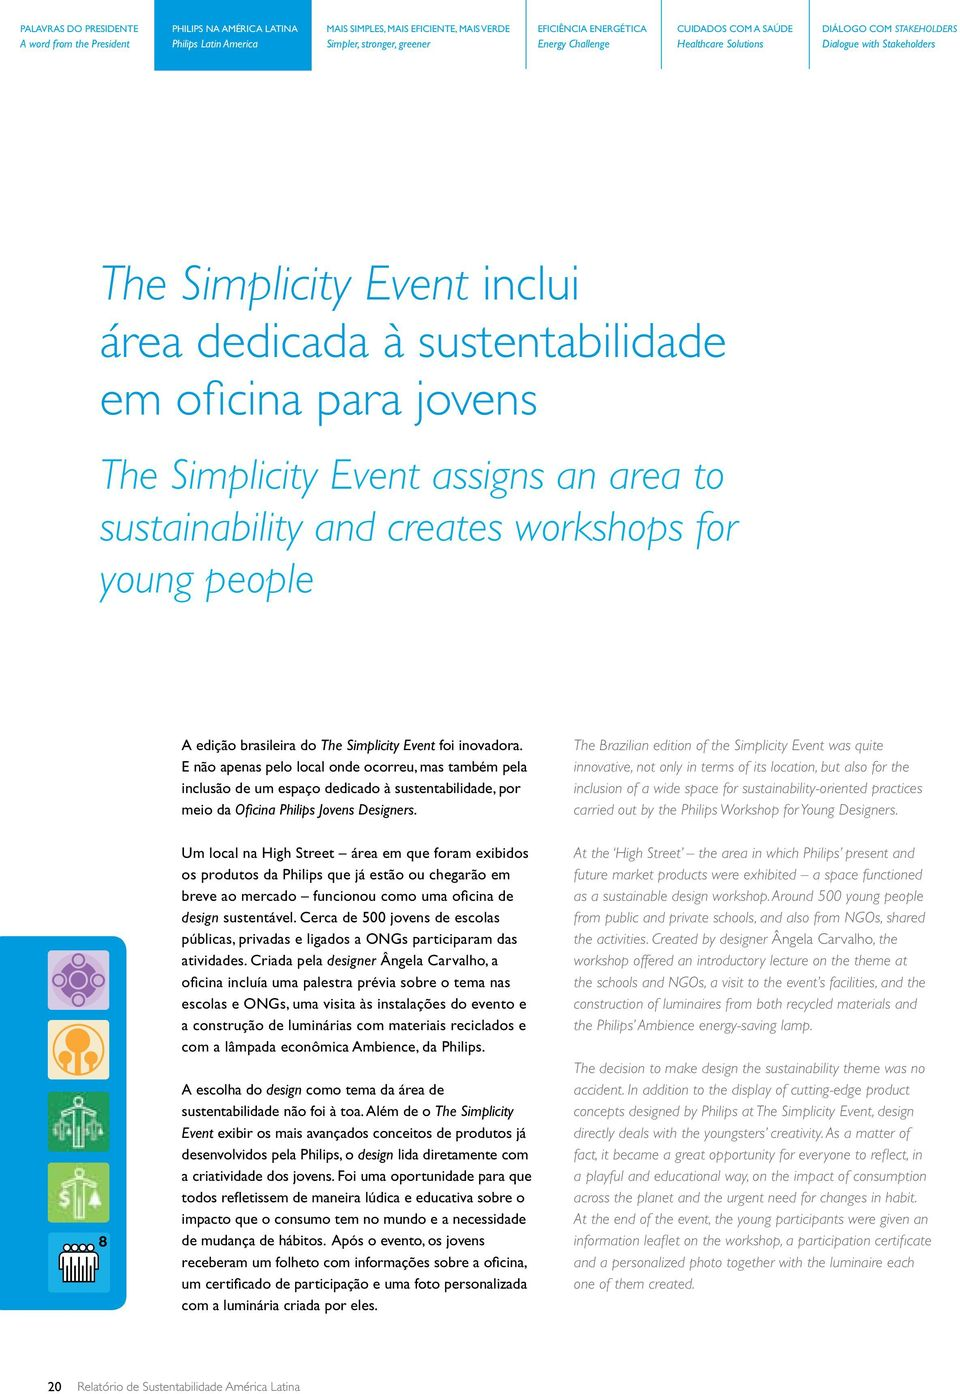 Simplicity Event assigns an area to sustainability and creates workshops for young people A edição brasileira do The Simplicity Event foi inovadora.